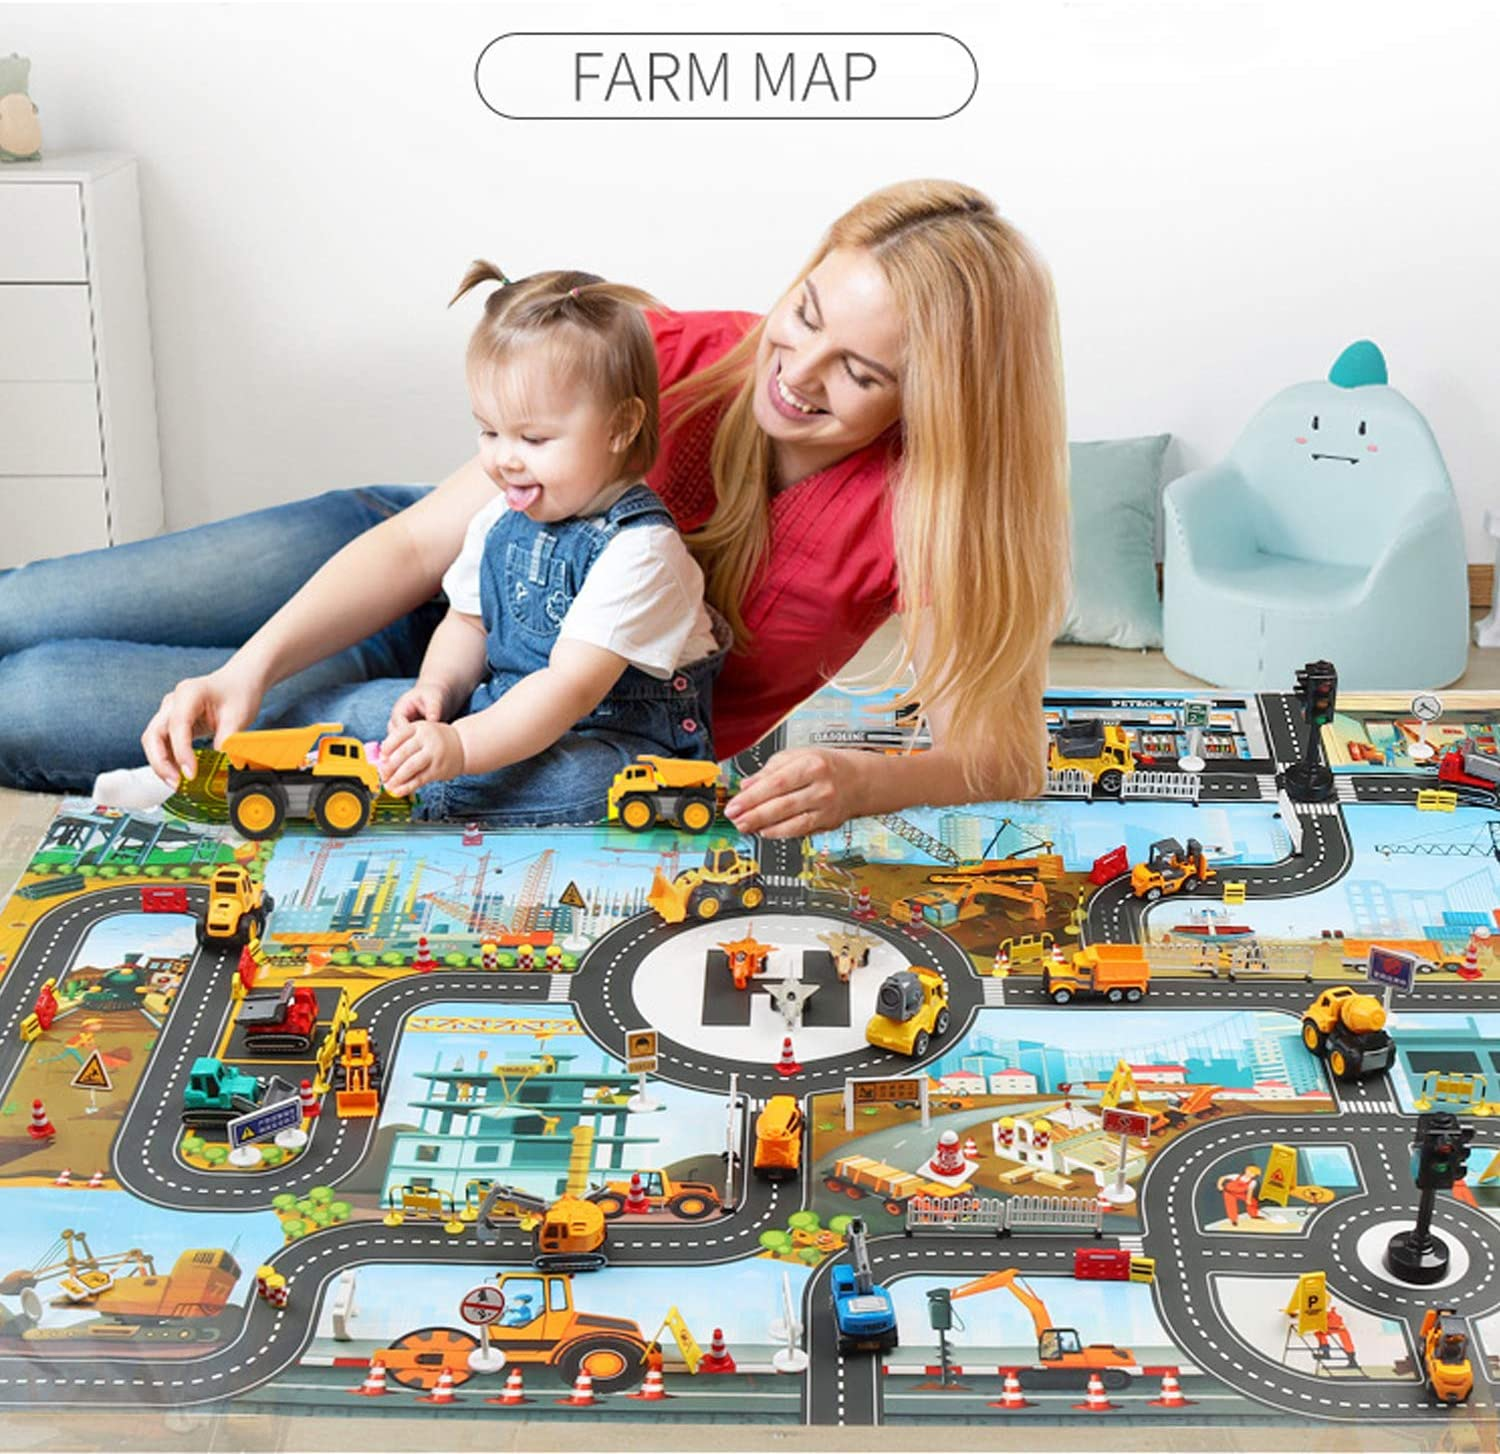 JTMM Kids Carpet Playmat Urban Construction,Plastic PVC Playmat Size39.3X51.1in//100x130CM Kids Rug Game Area Rug Carpet /& Educational Learning Gift for Kids and Children Bedrooms and Playroom